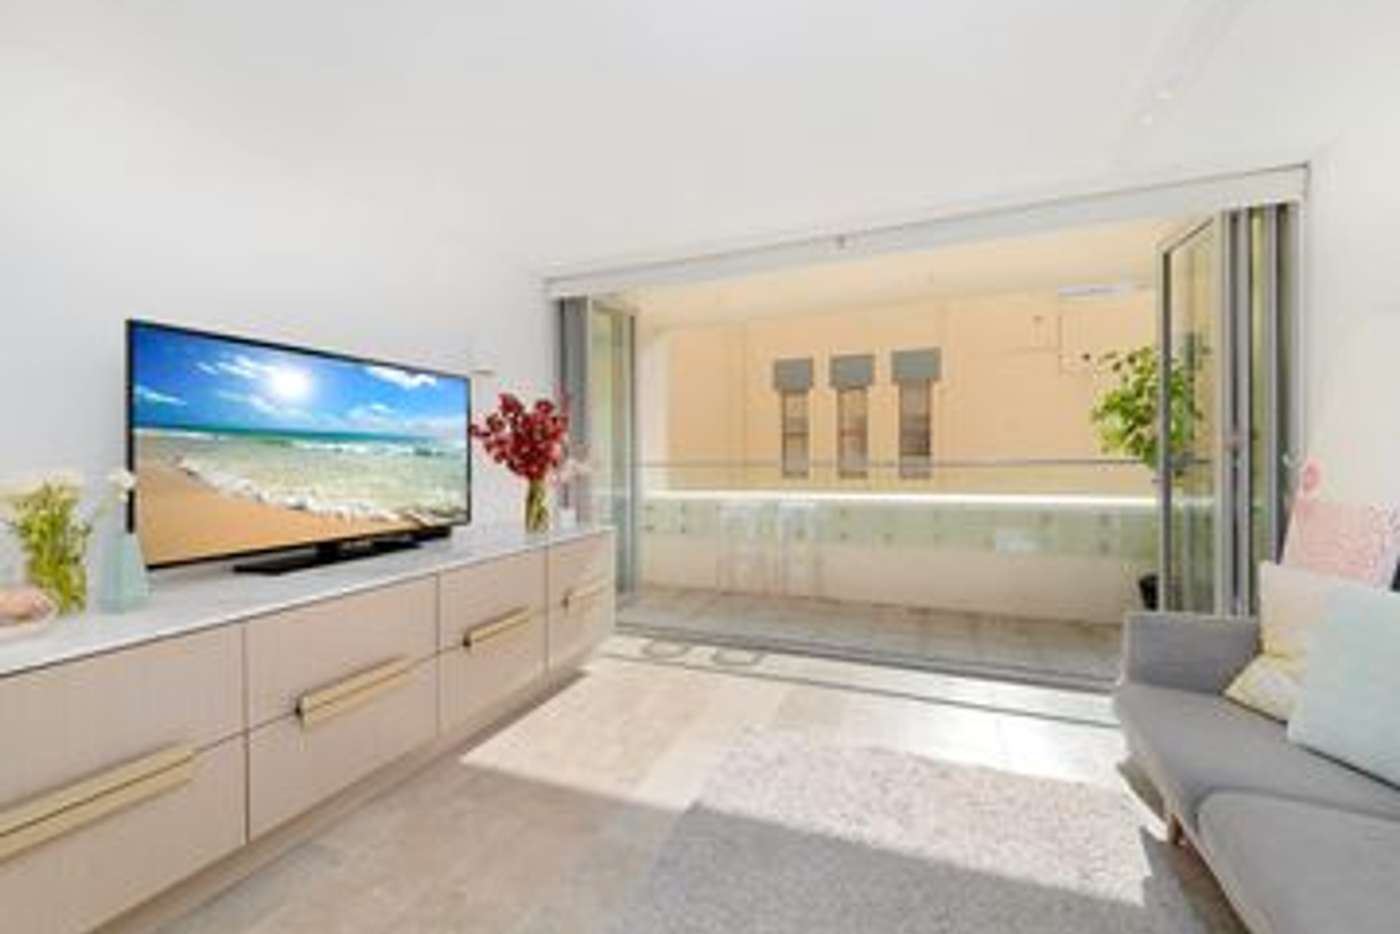 Main view of Homely apartment listing, 152 Campbell Parade, Bondi Beach NSW 2026